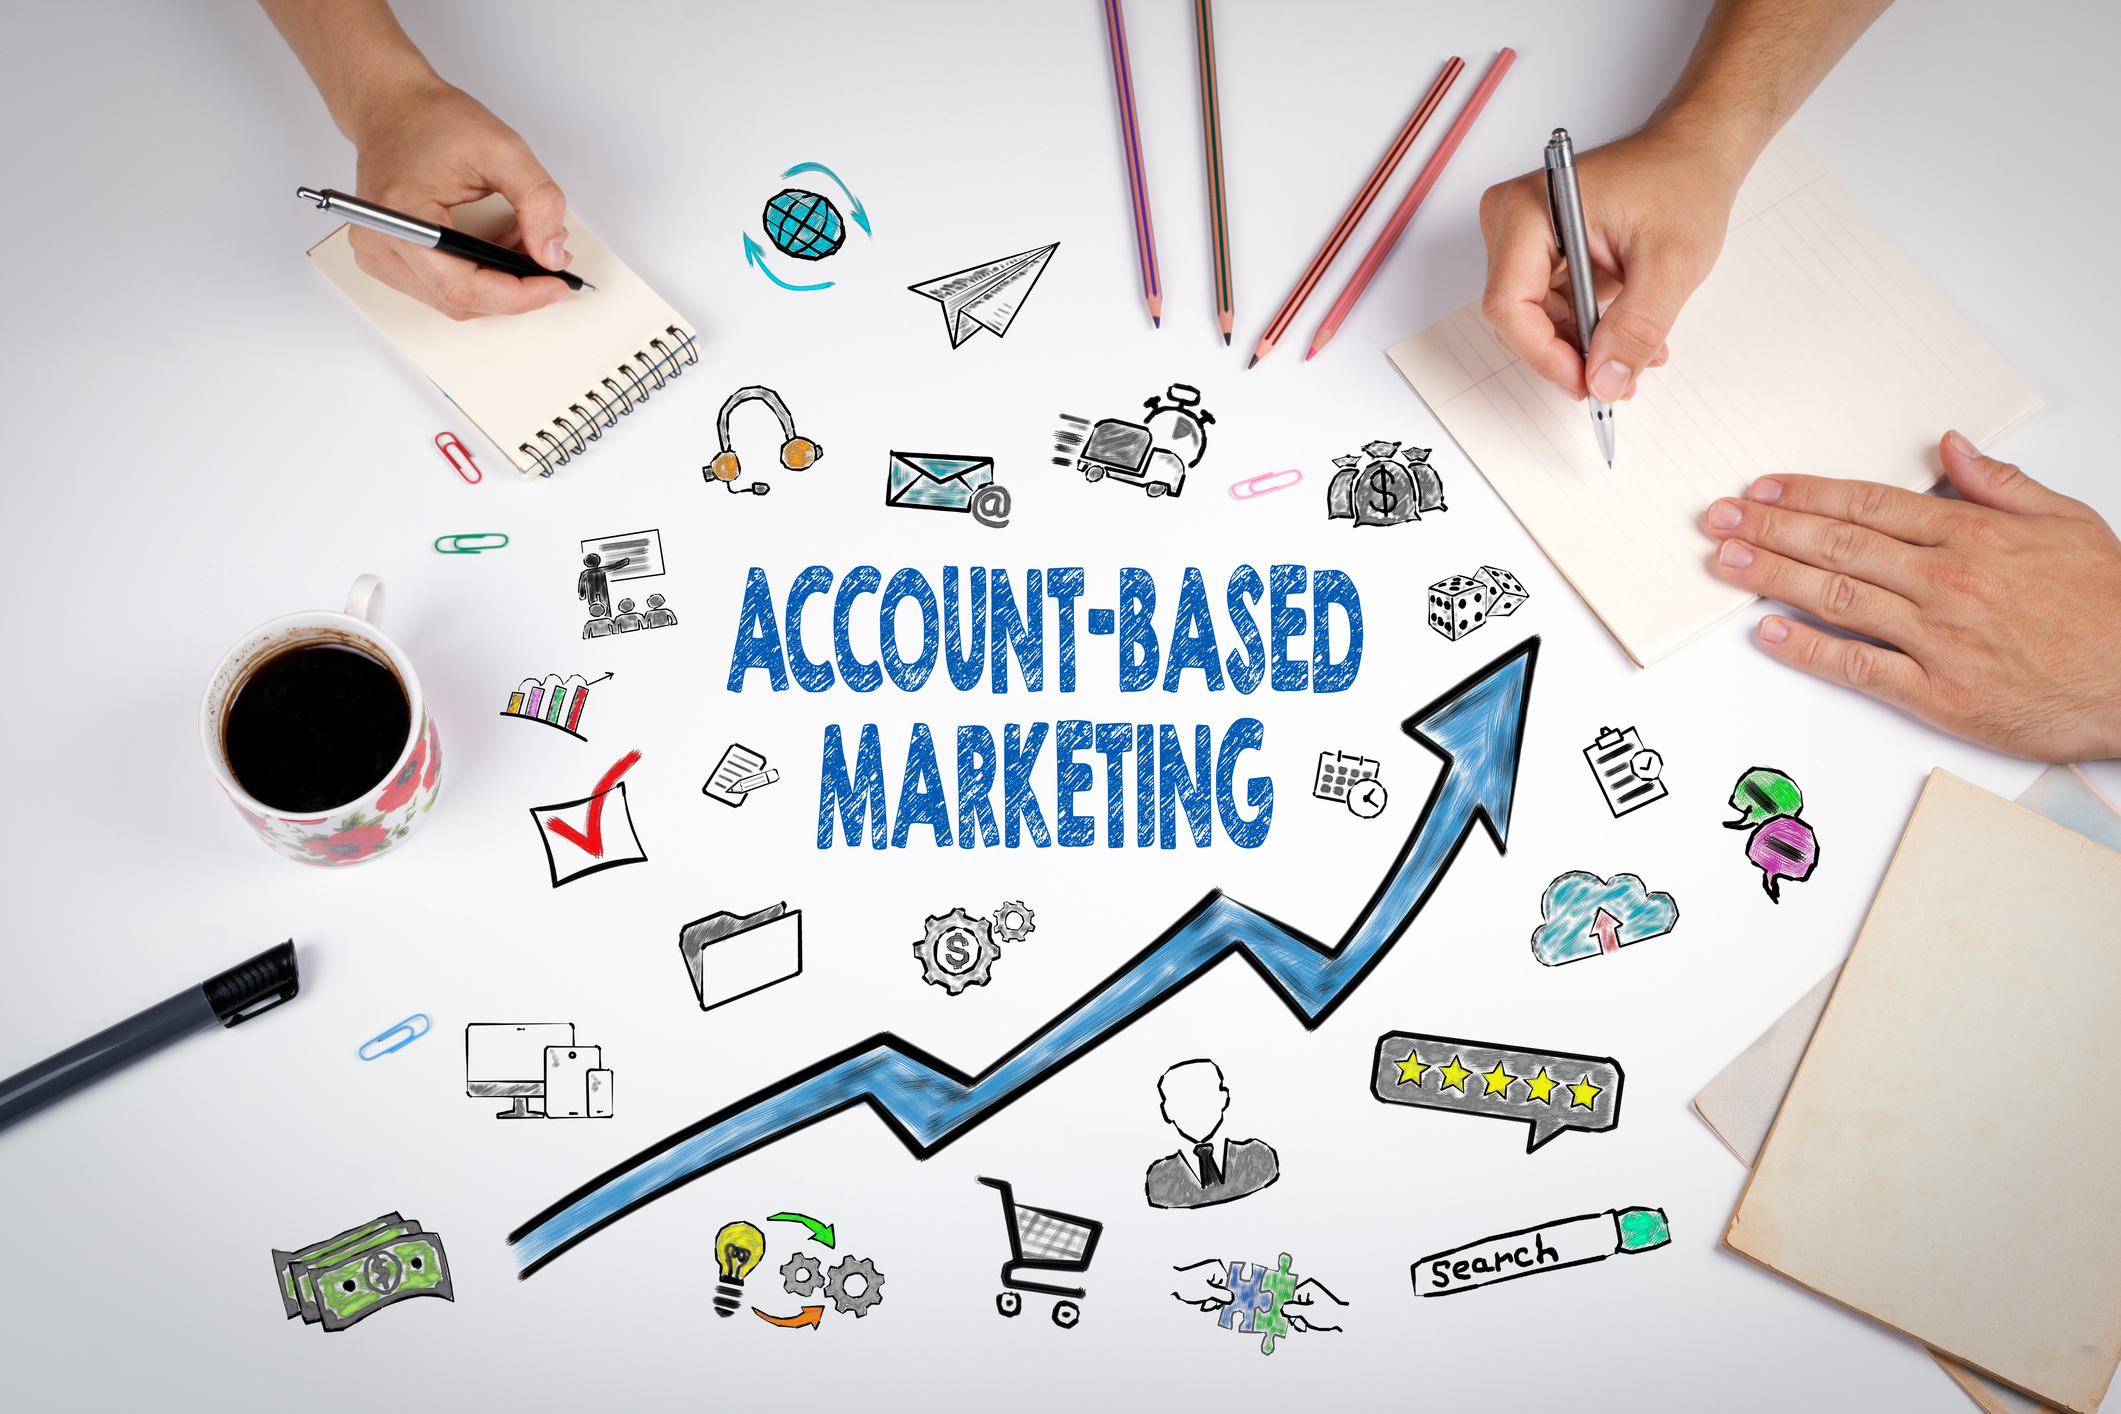 THE BEGINNERS GUIDE TO ACCOUNT BASED MARKETING